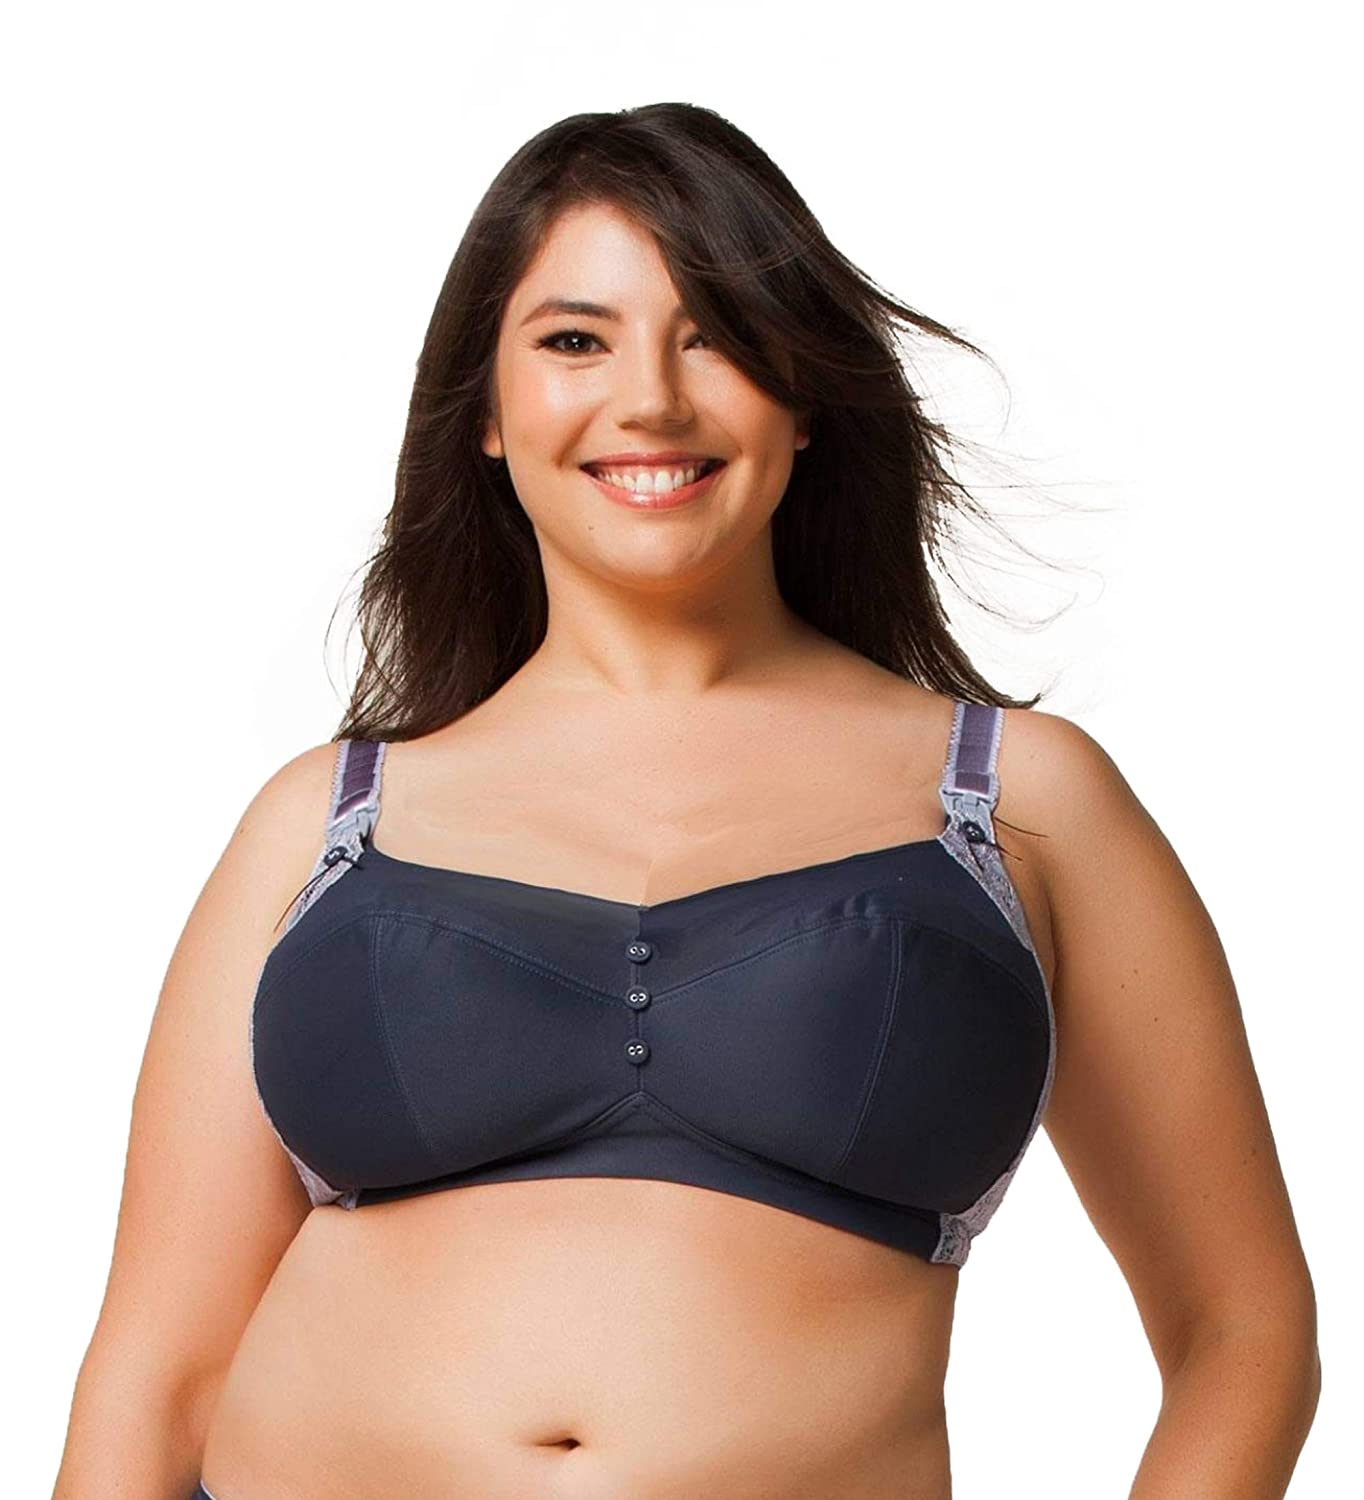 d172f2ff4 Cake Maternity Women s Maternity and Nursing Sorbet Bra